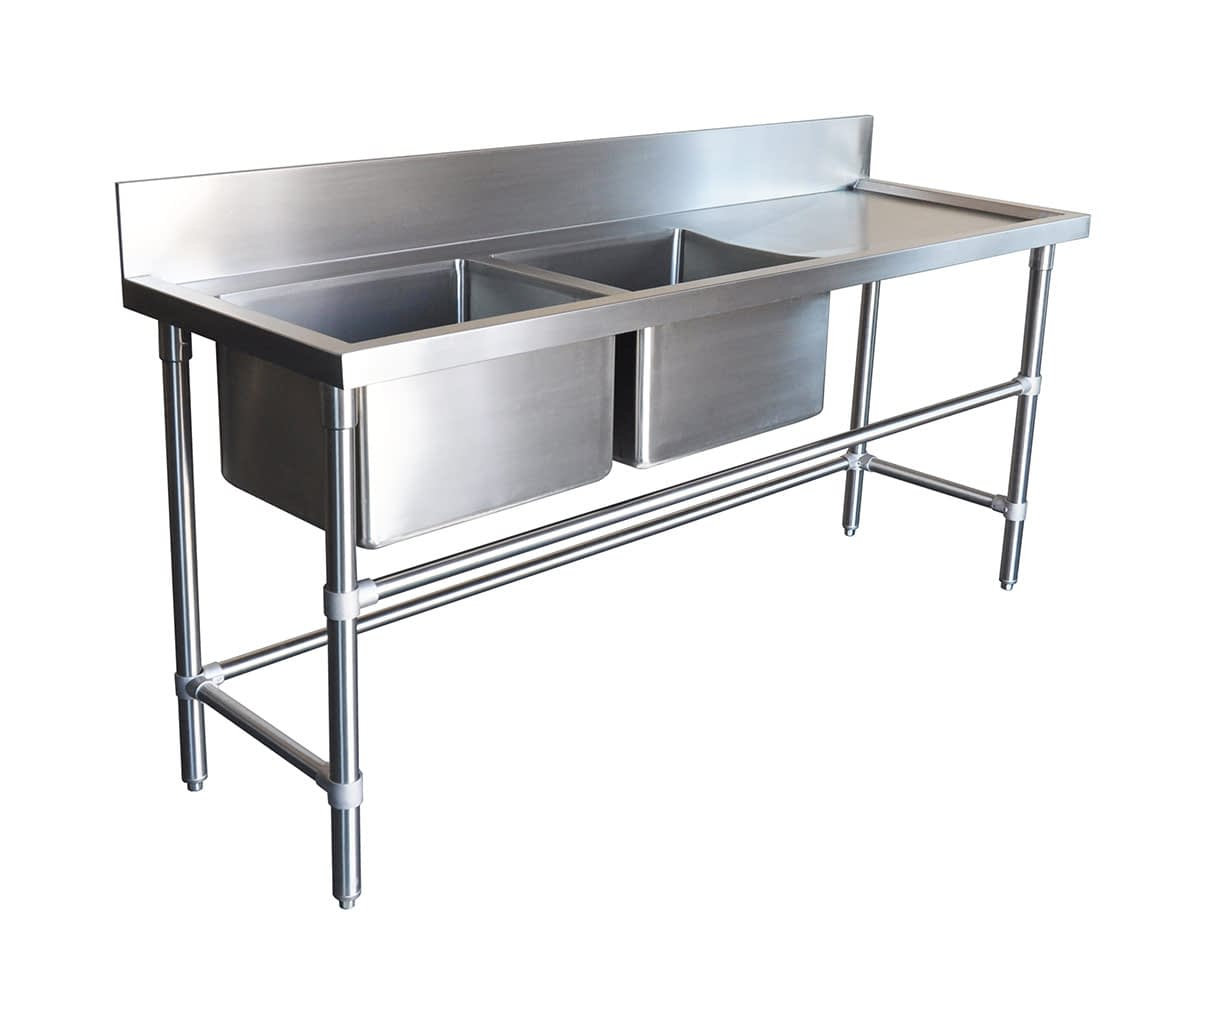 Double Bowl Stainless Sinks – Right Bench, 1900 x 610 x 900mm high